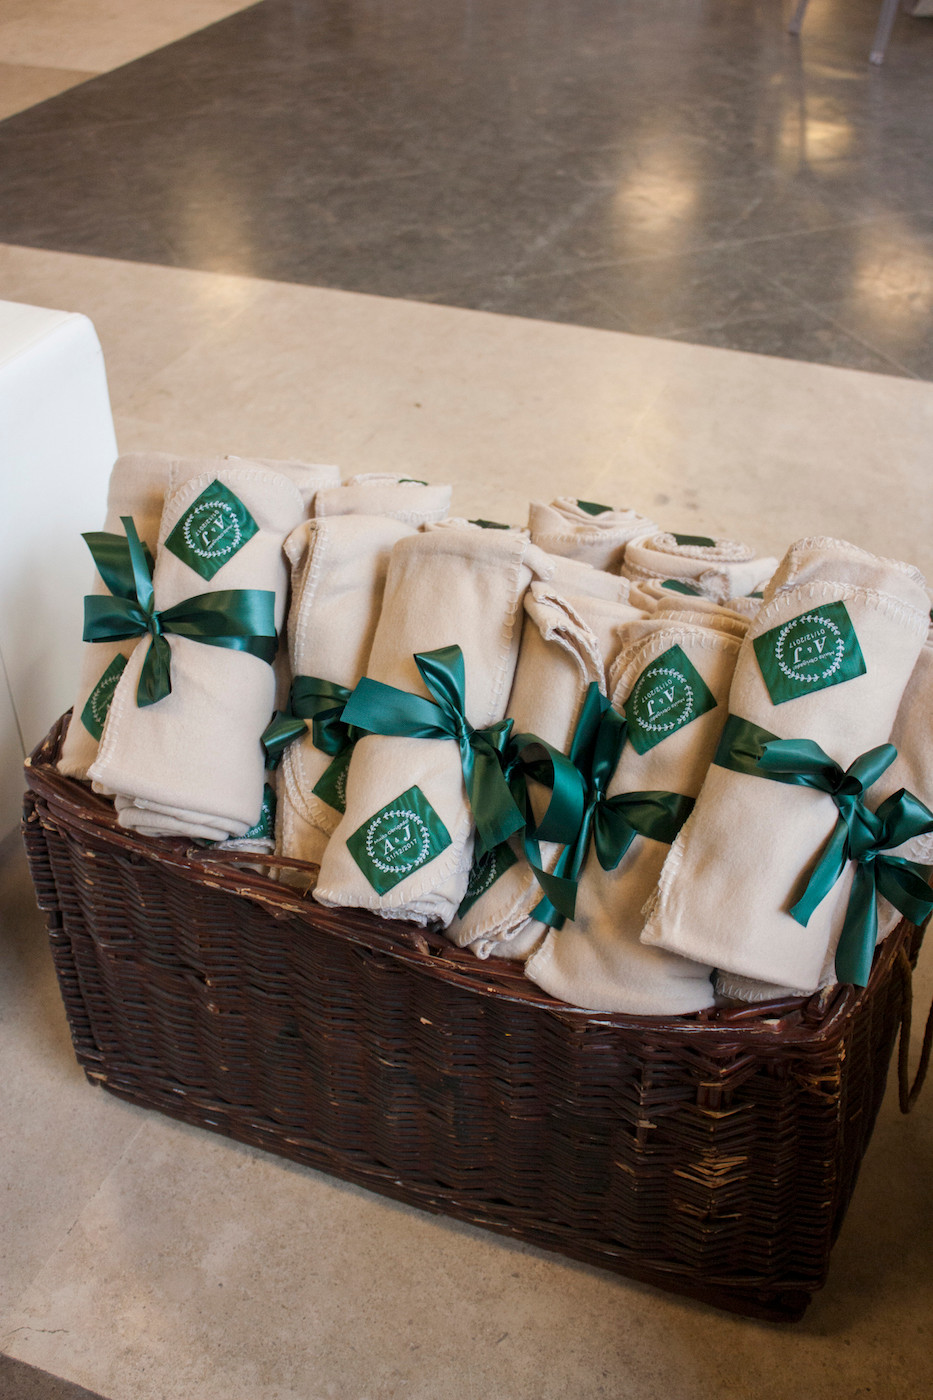 Blankets for wedding guests. Portugal wedding planning